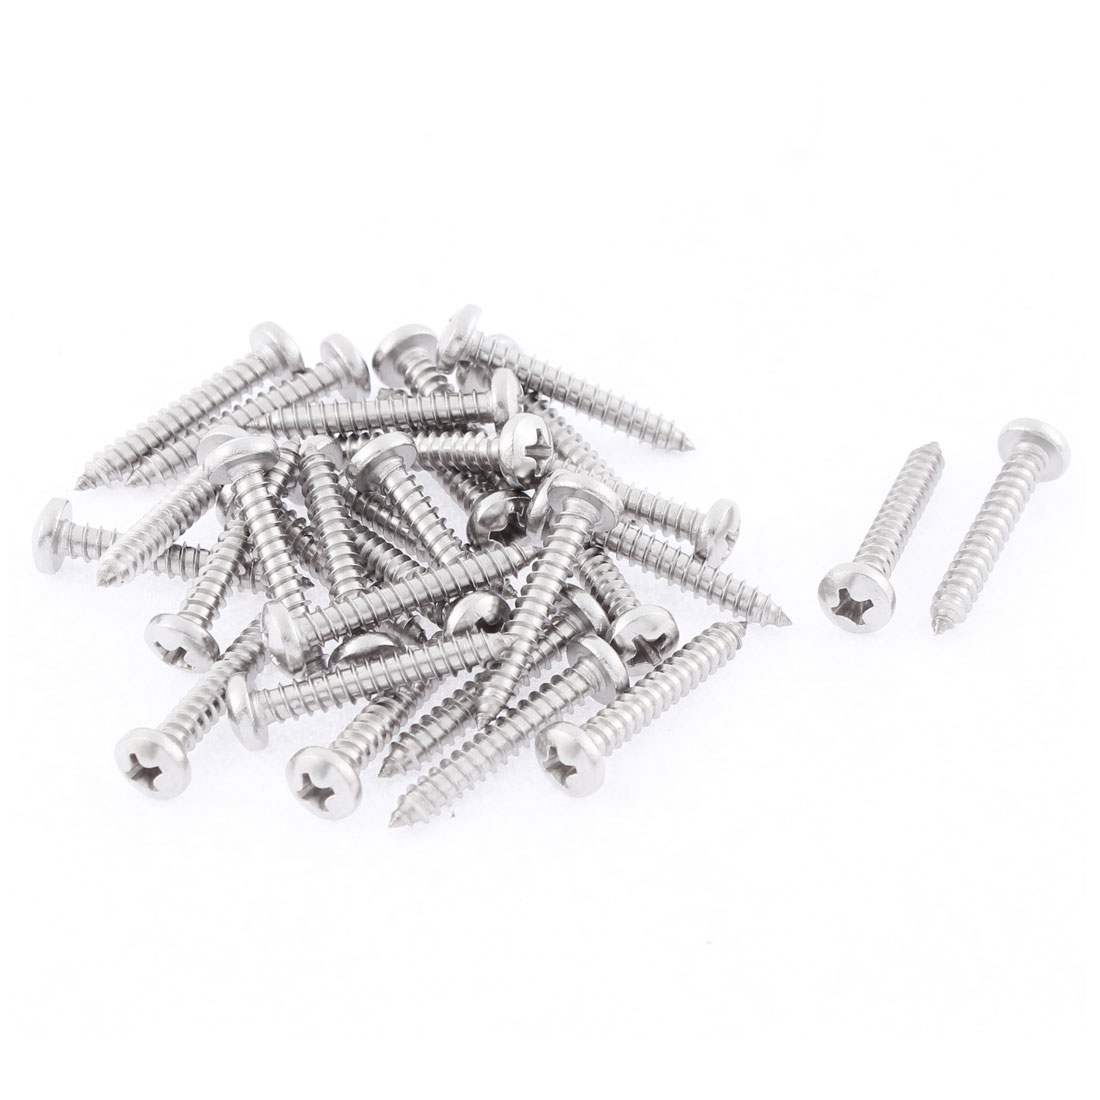 30 Pcs 3.9mmx25mm Stainless Steel Phillips Round Head Sheet Self Tapping Screws